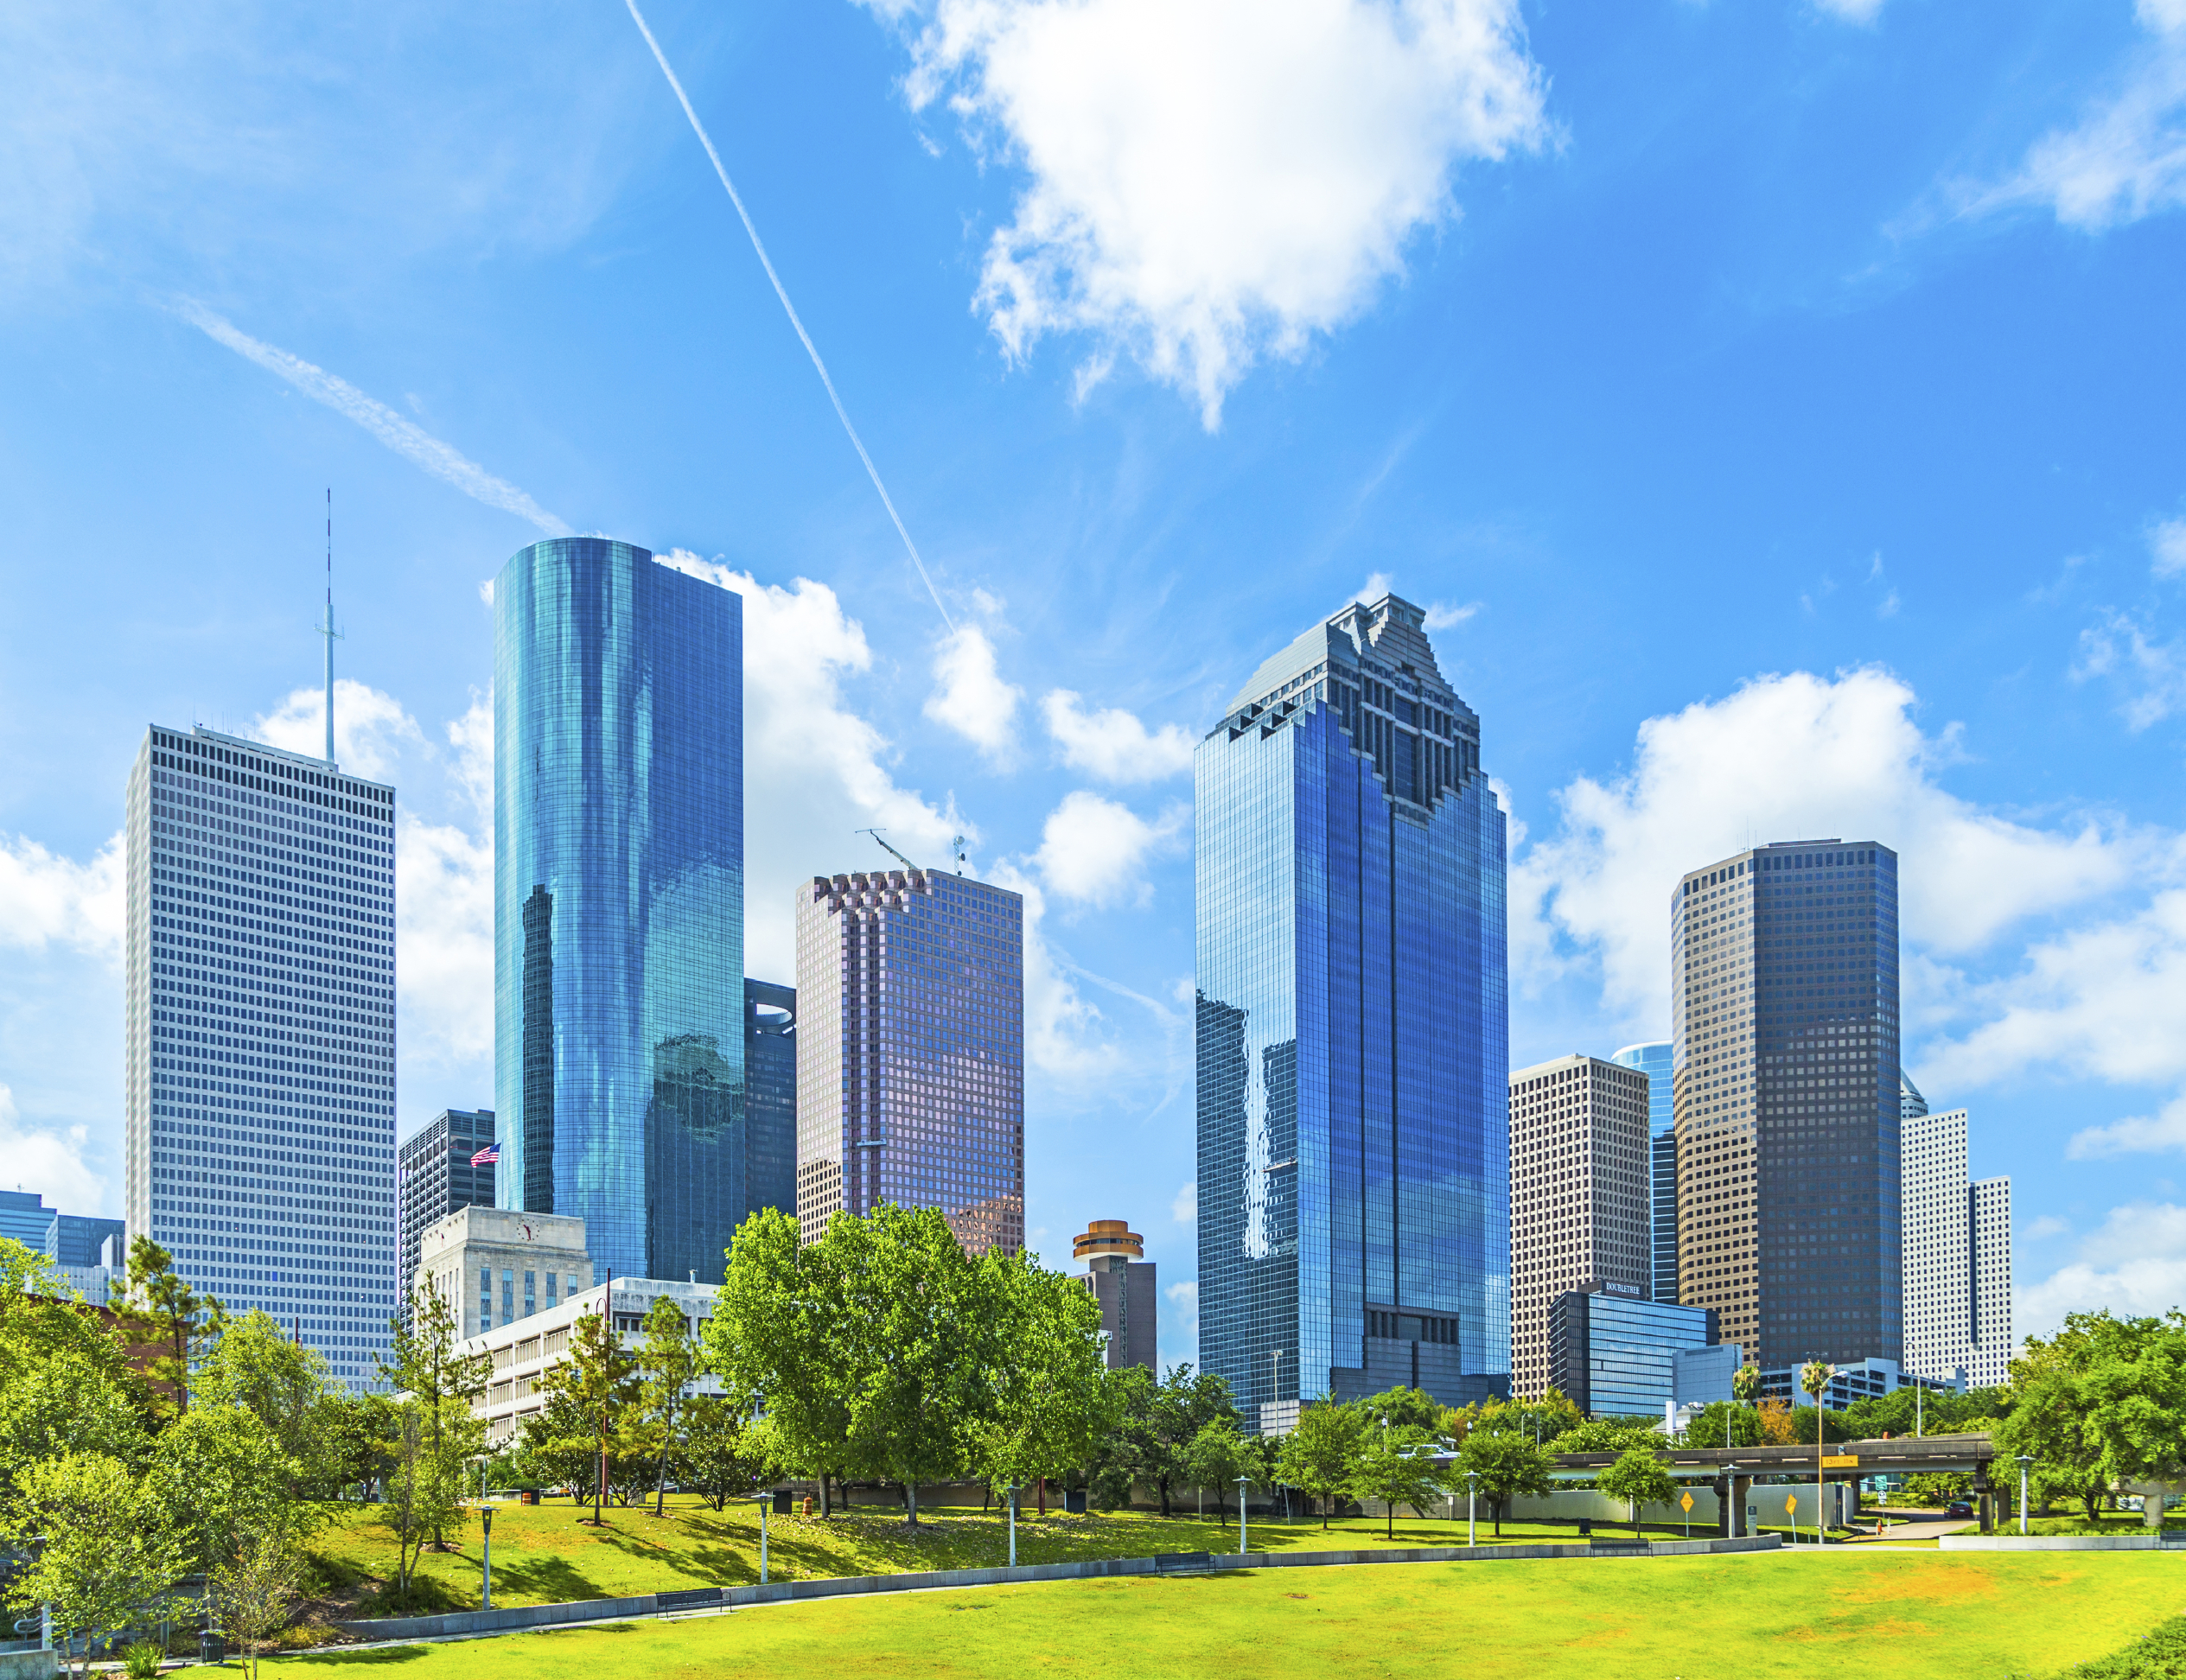 The Economic Outlook for Houston in 2019: Oil Prices Are Up Again, But Oil Risk Continues